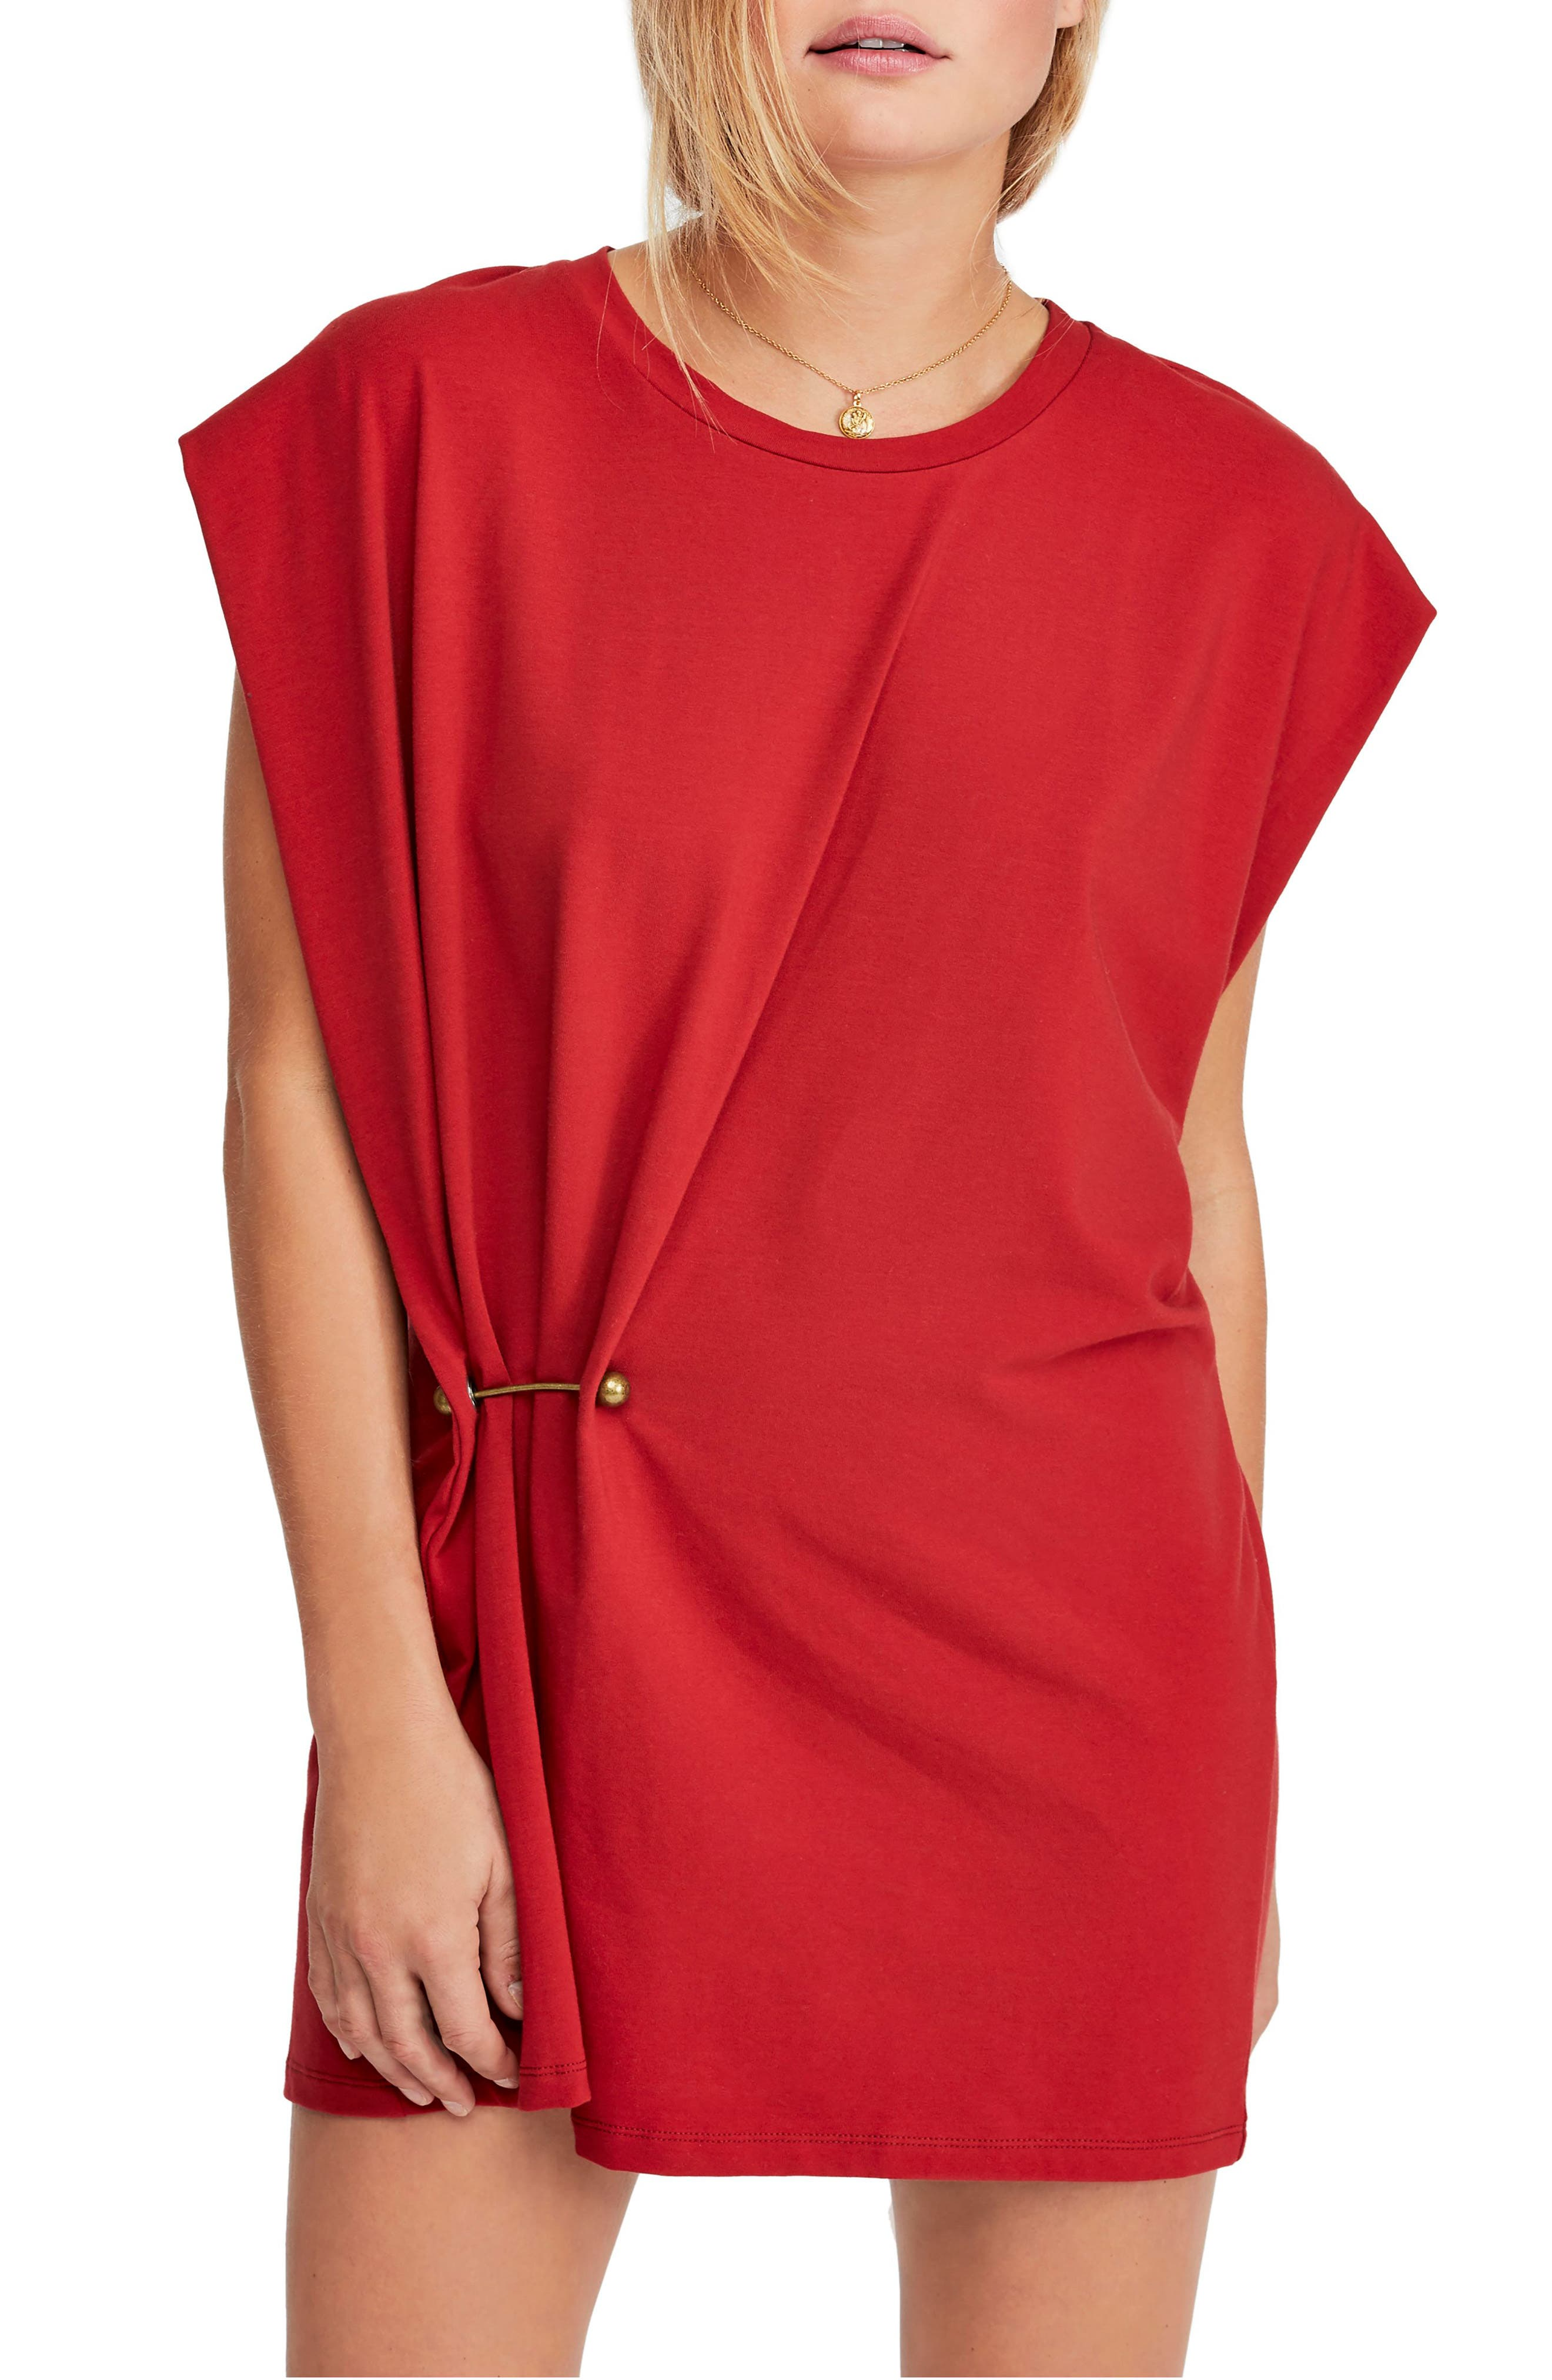 FREE PEOPLE, Bianca Shift Dress, Main thumbnail 1, color, RED